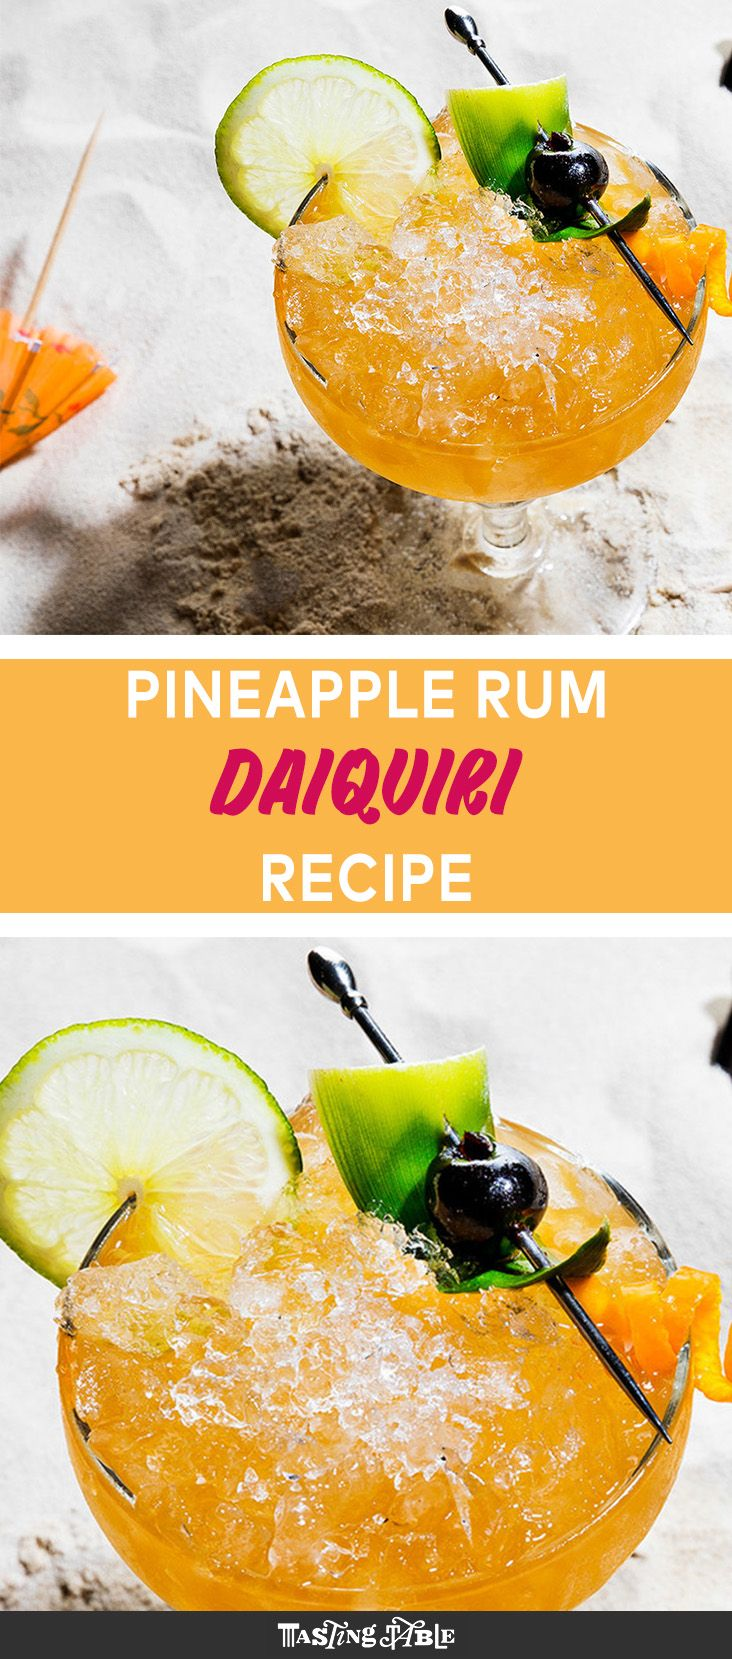 Shake tropical pineapple rum with fresh squeezed lime juice, simple syrup and maraschino cherry liqueur for a fruity spin on the classic daiquiri.